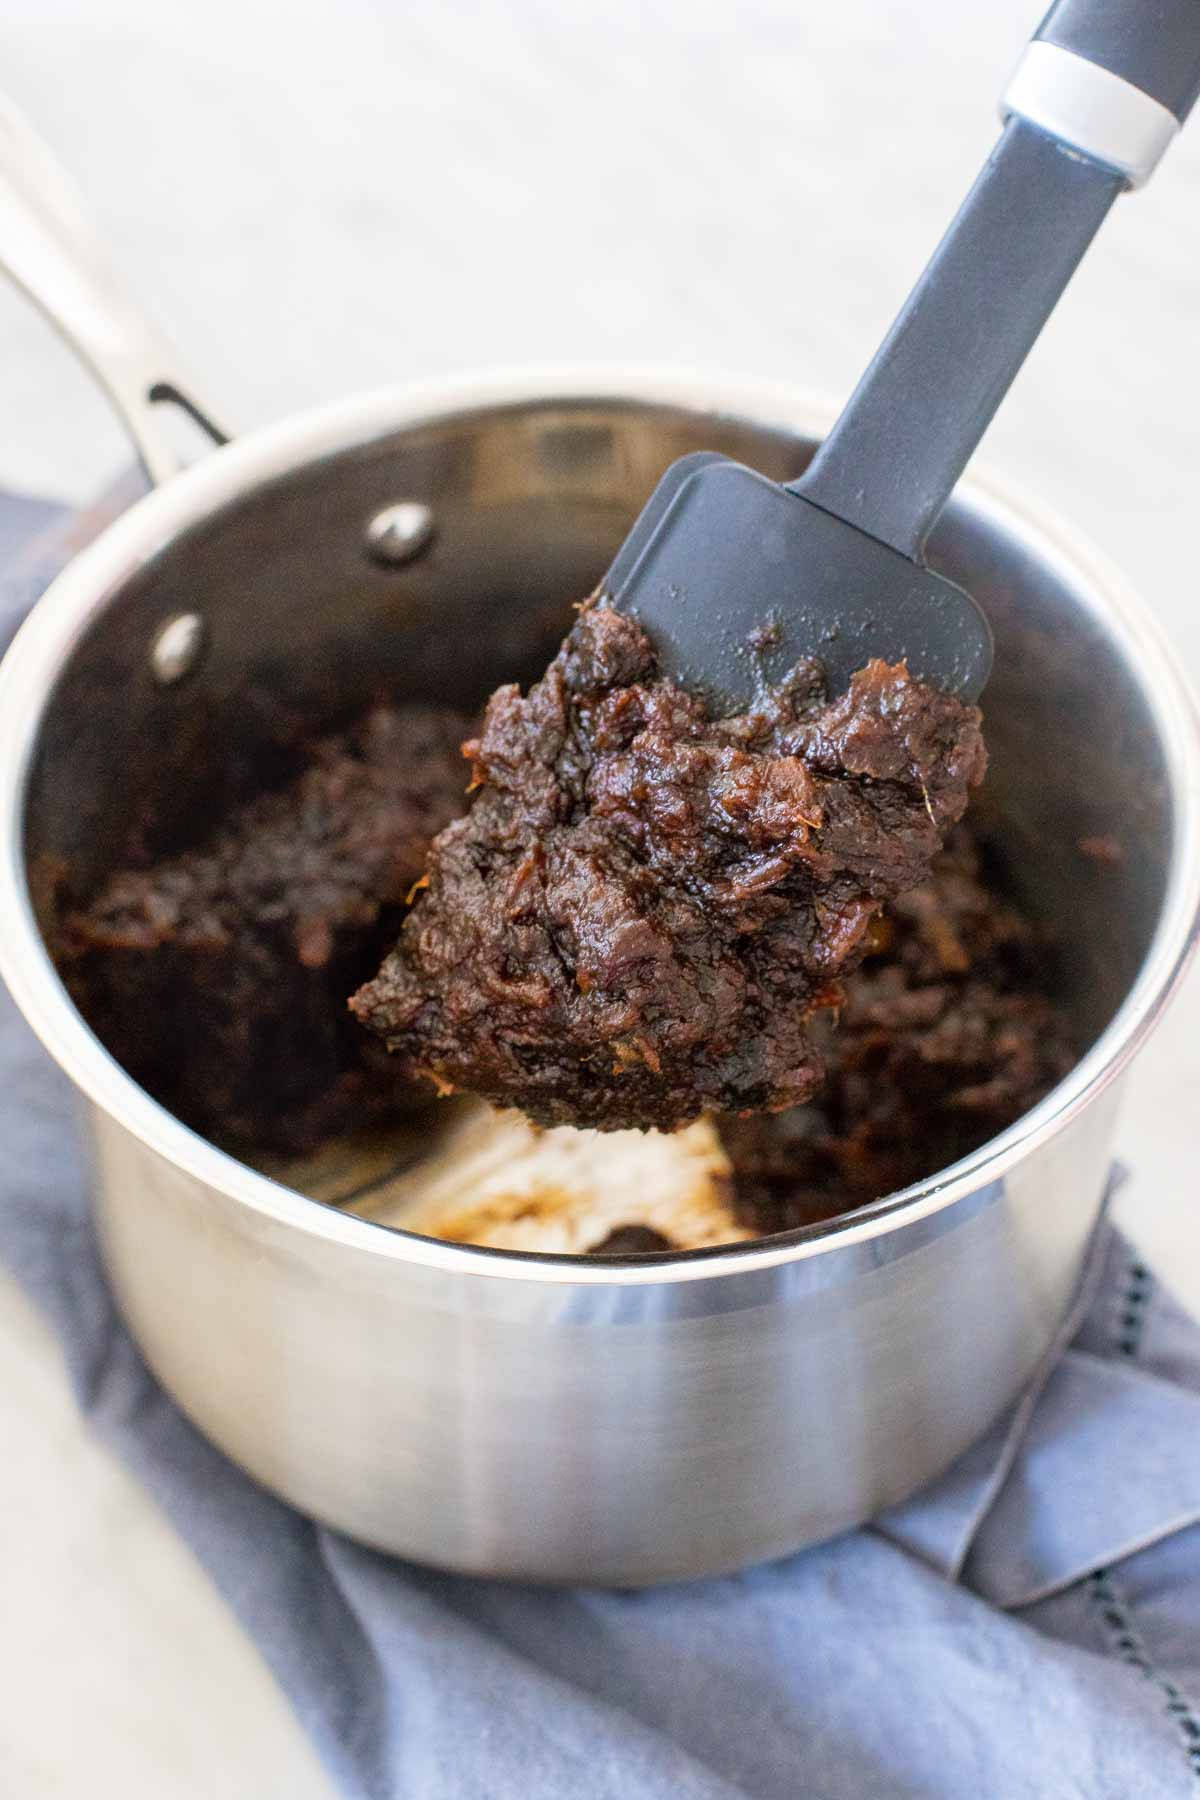 Boiled date mixture in a pan.